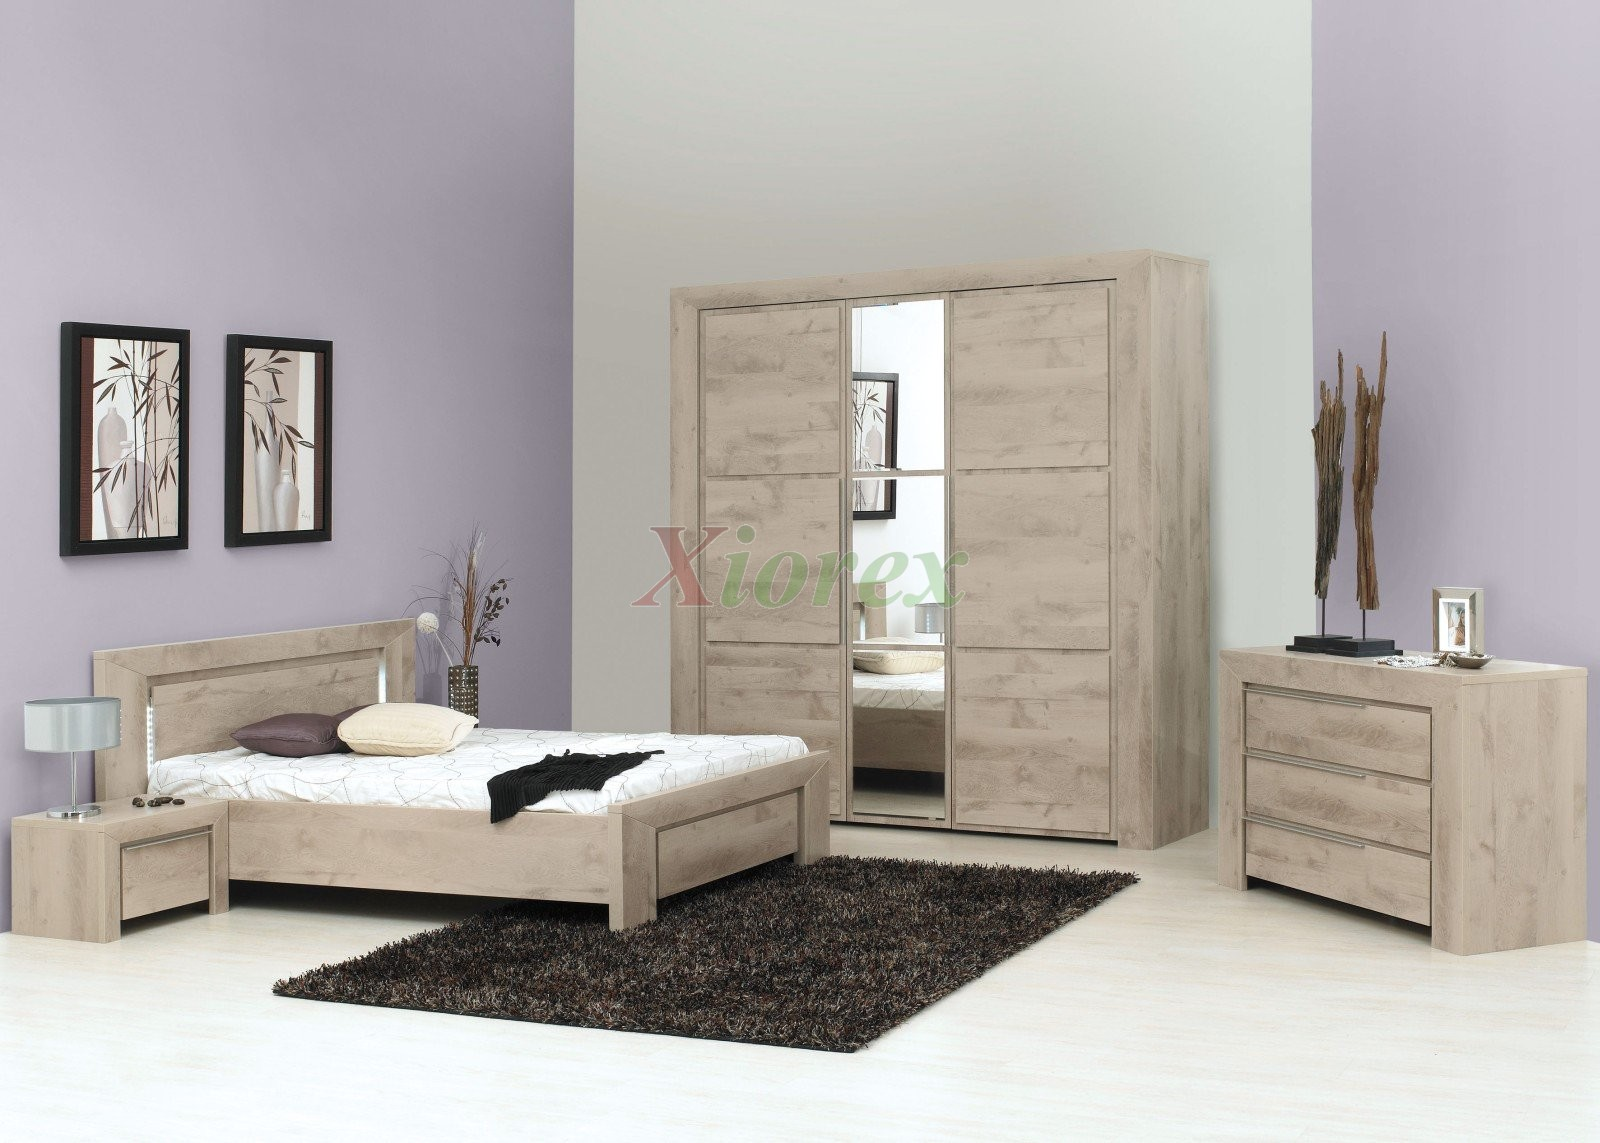 Gami bed set gami sarlat bed sarlat gami bed set by - Idee tete de lit en peinture ...